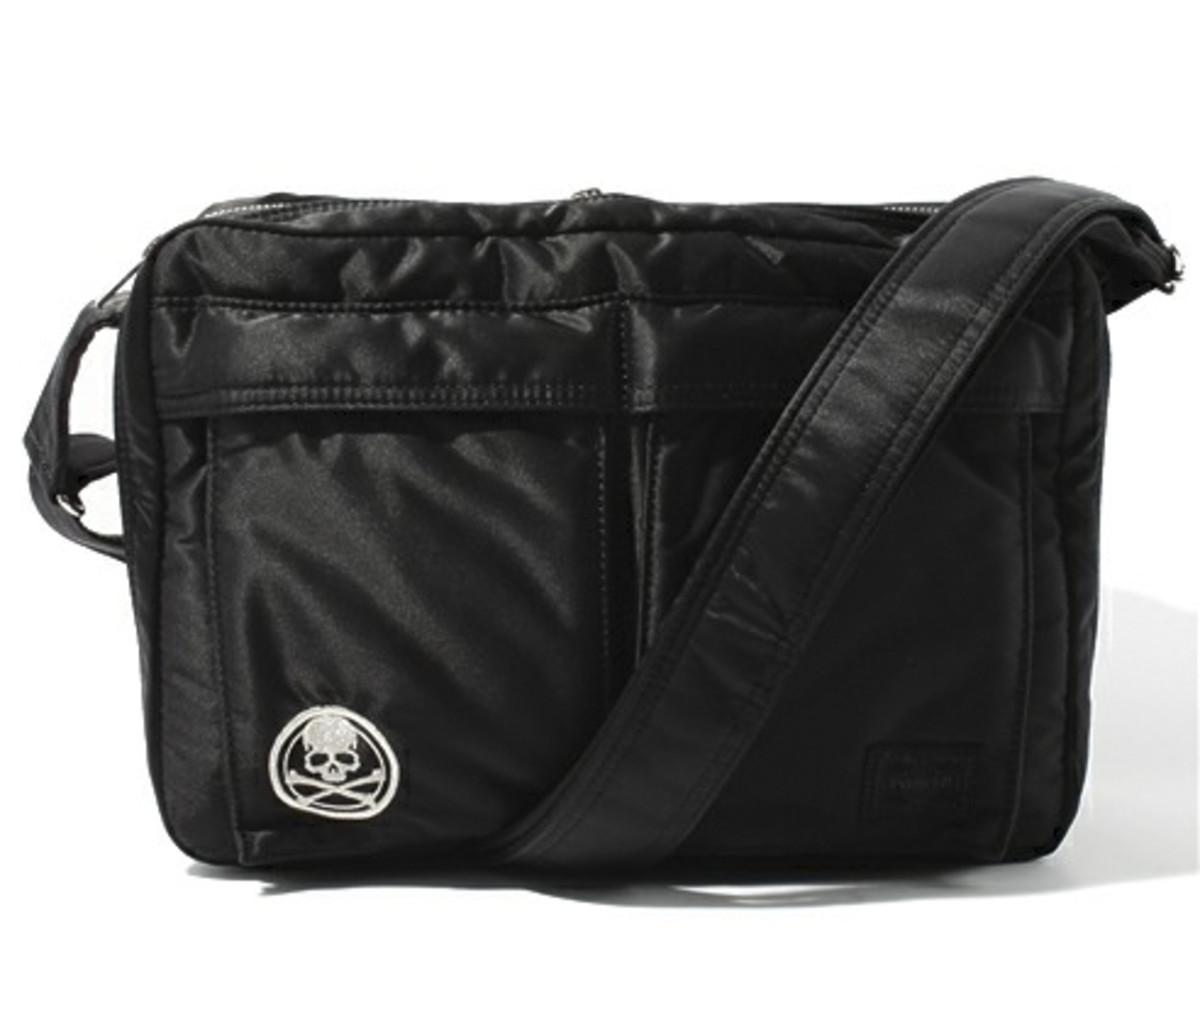 mastermind-JAPAN-porter-large-shoulder-bag-01